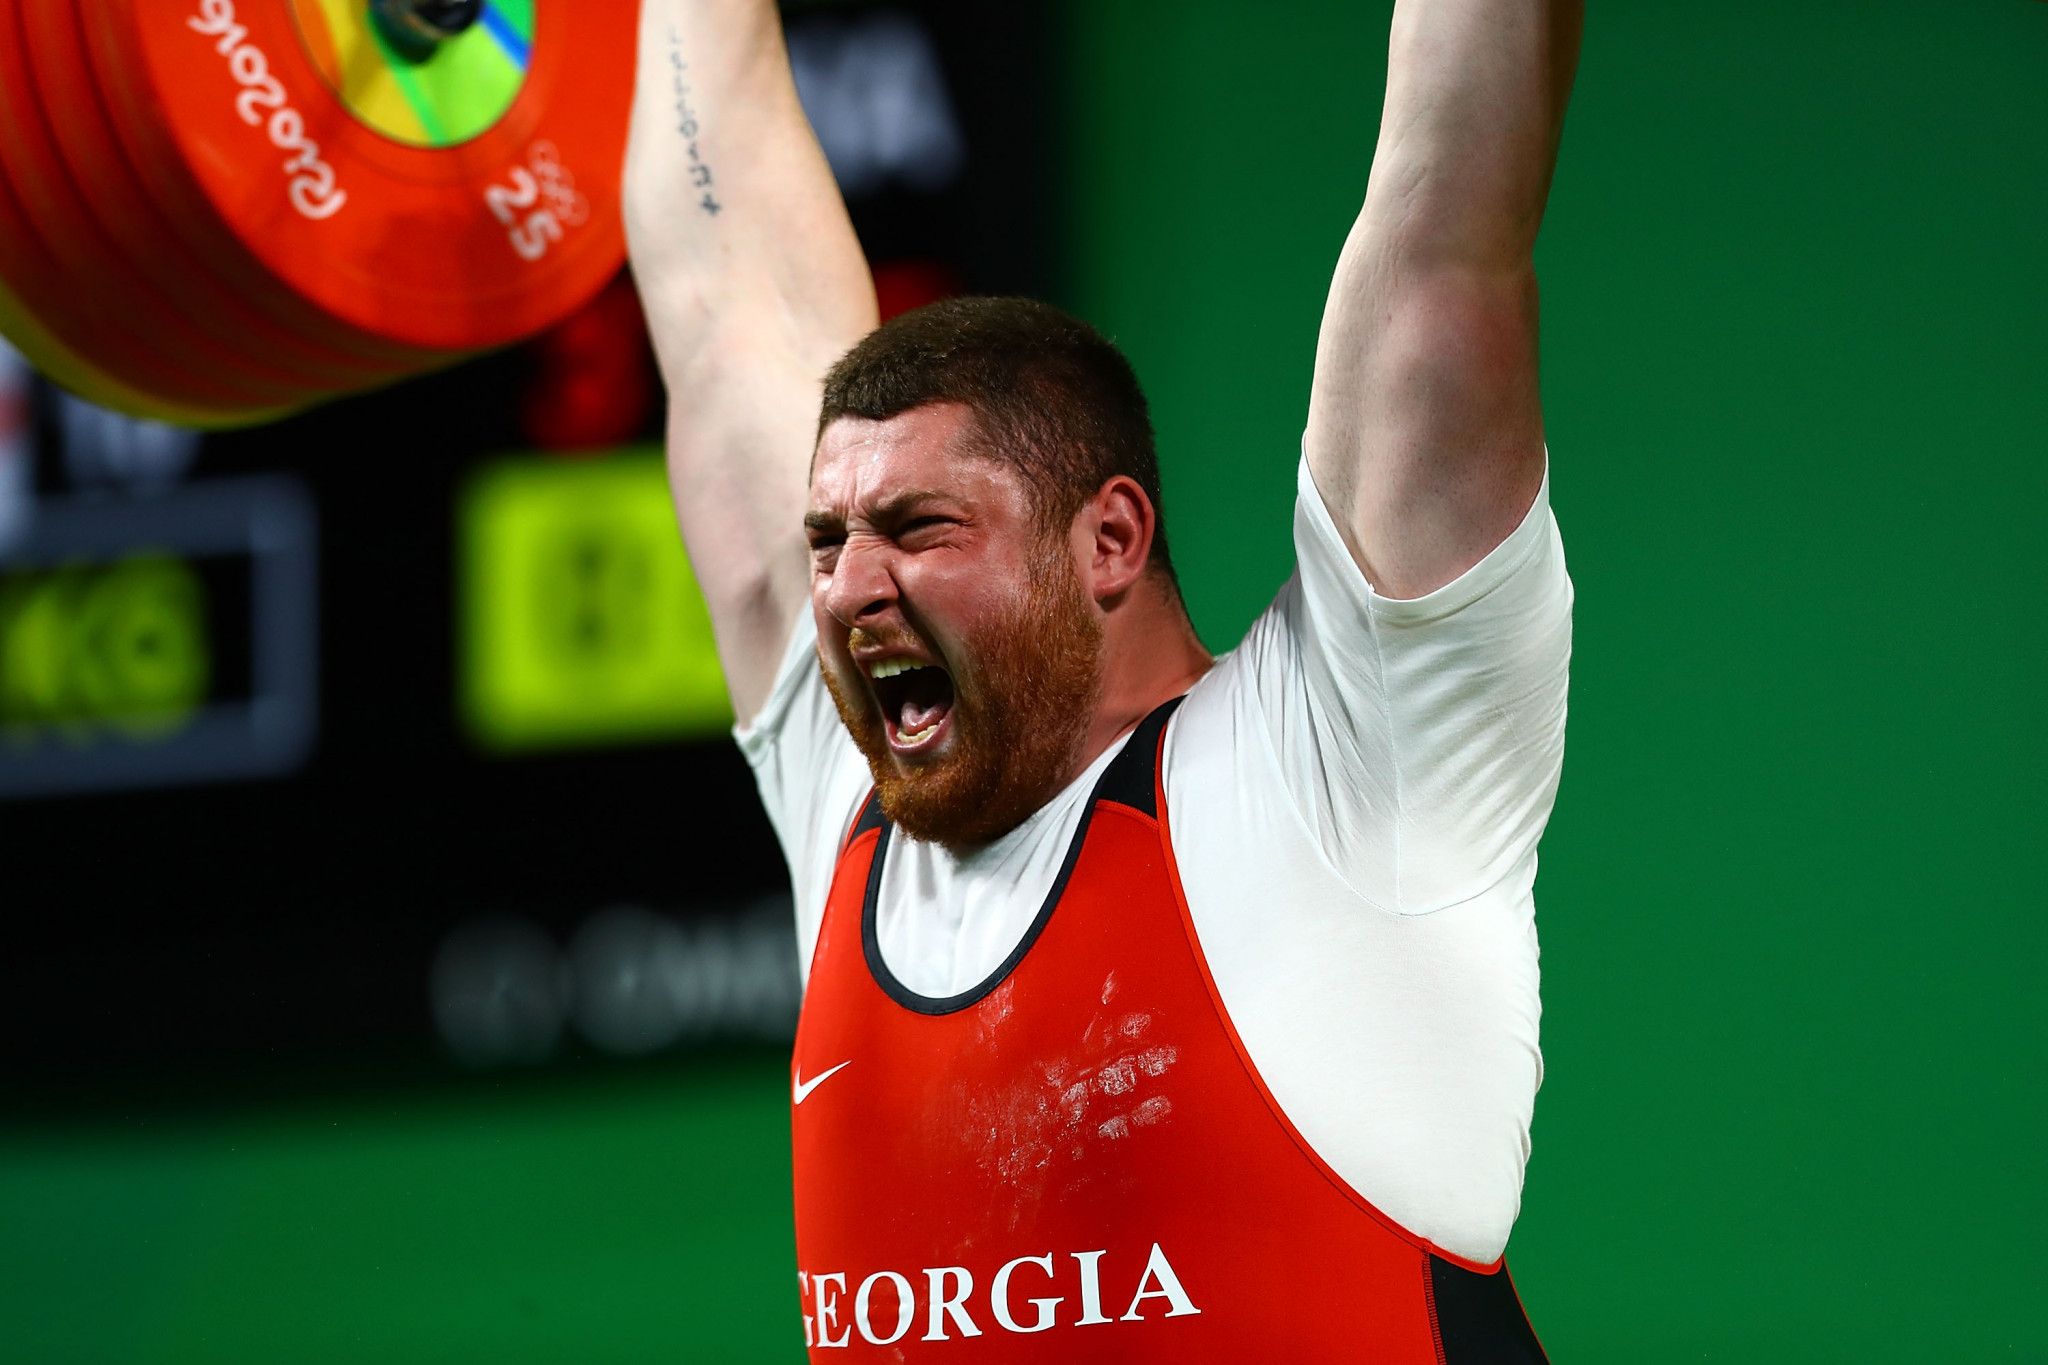 Lasha Talakhadze, the Georgian weightlifter, could win gold on home soil if the Championships are moved ©Getty Images